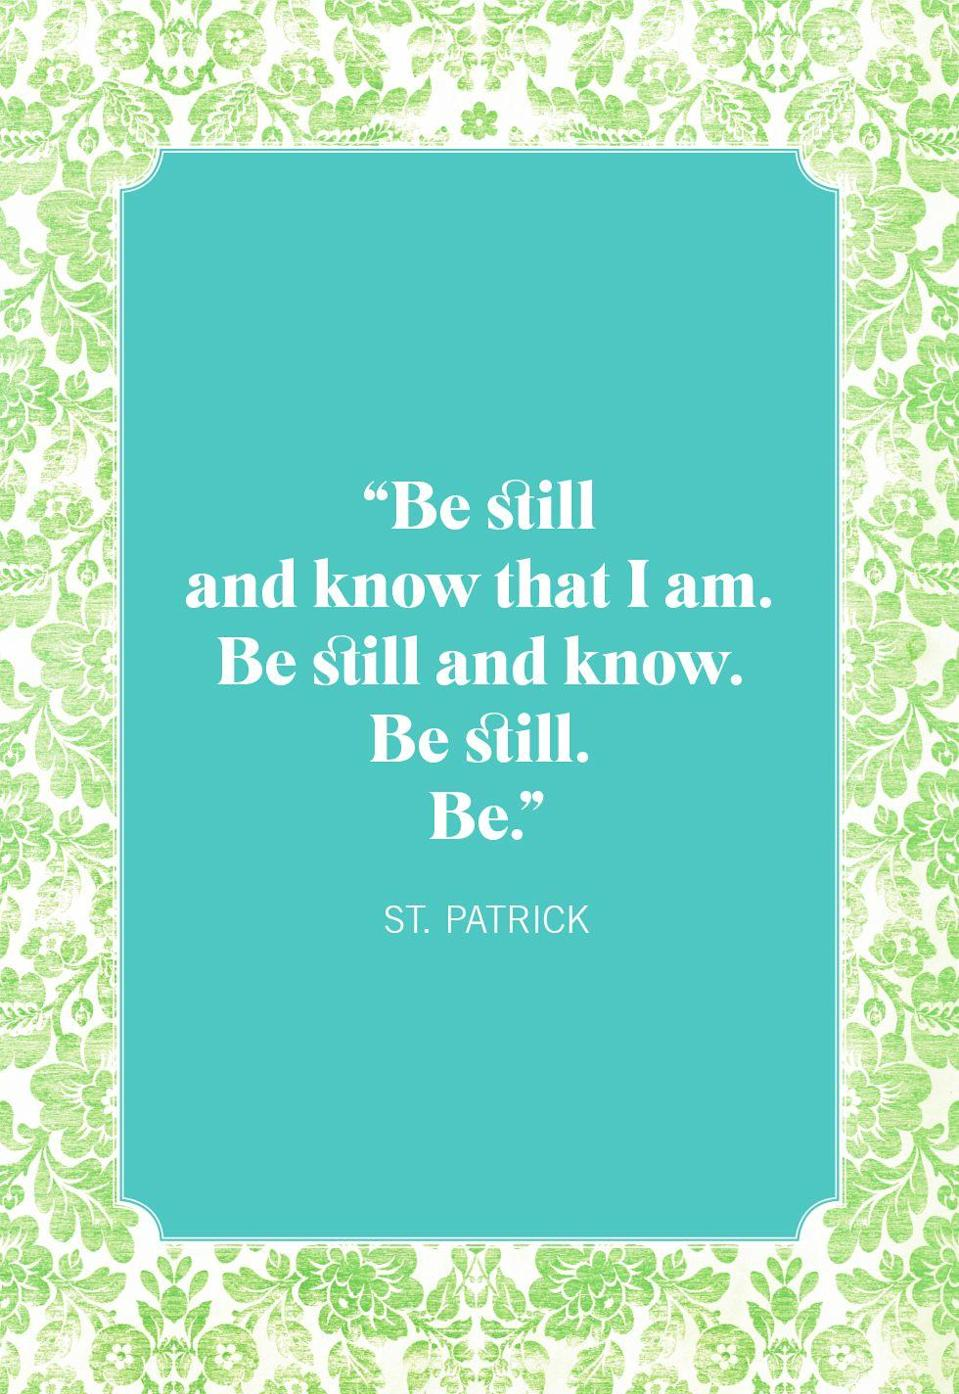 "<p>""Be still and know that I am. Be still and know. Be still. Be.""</p>"